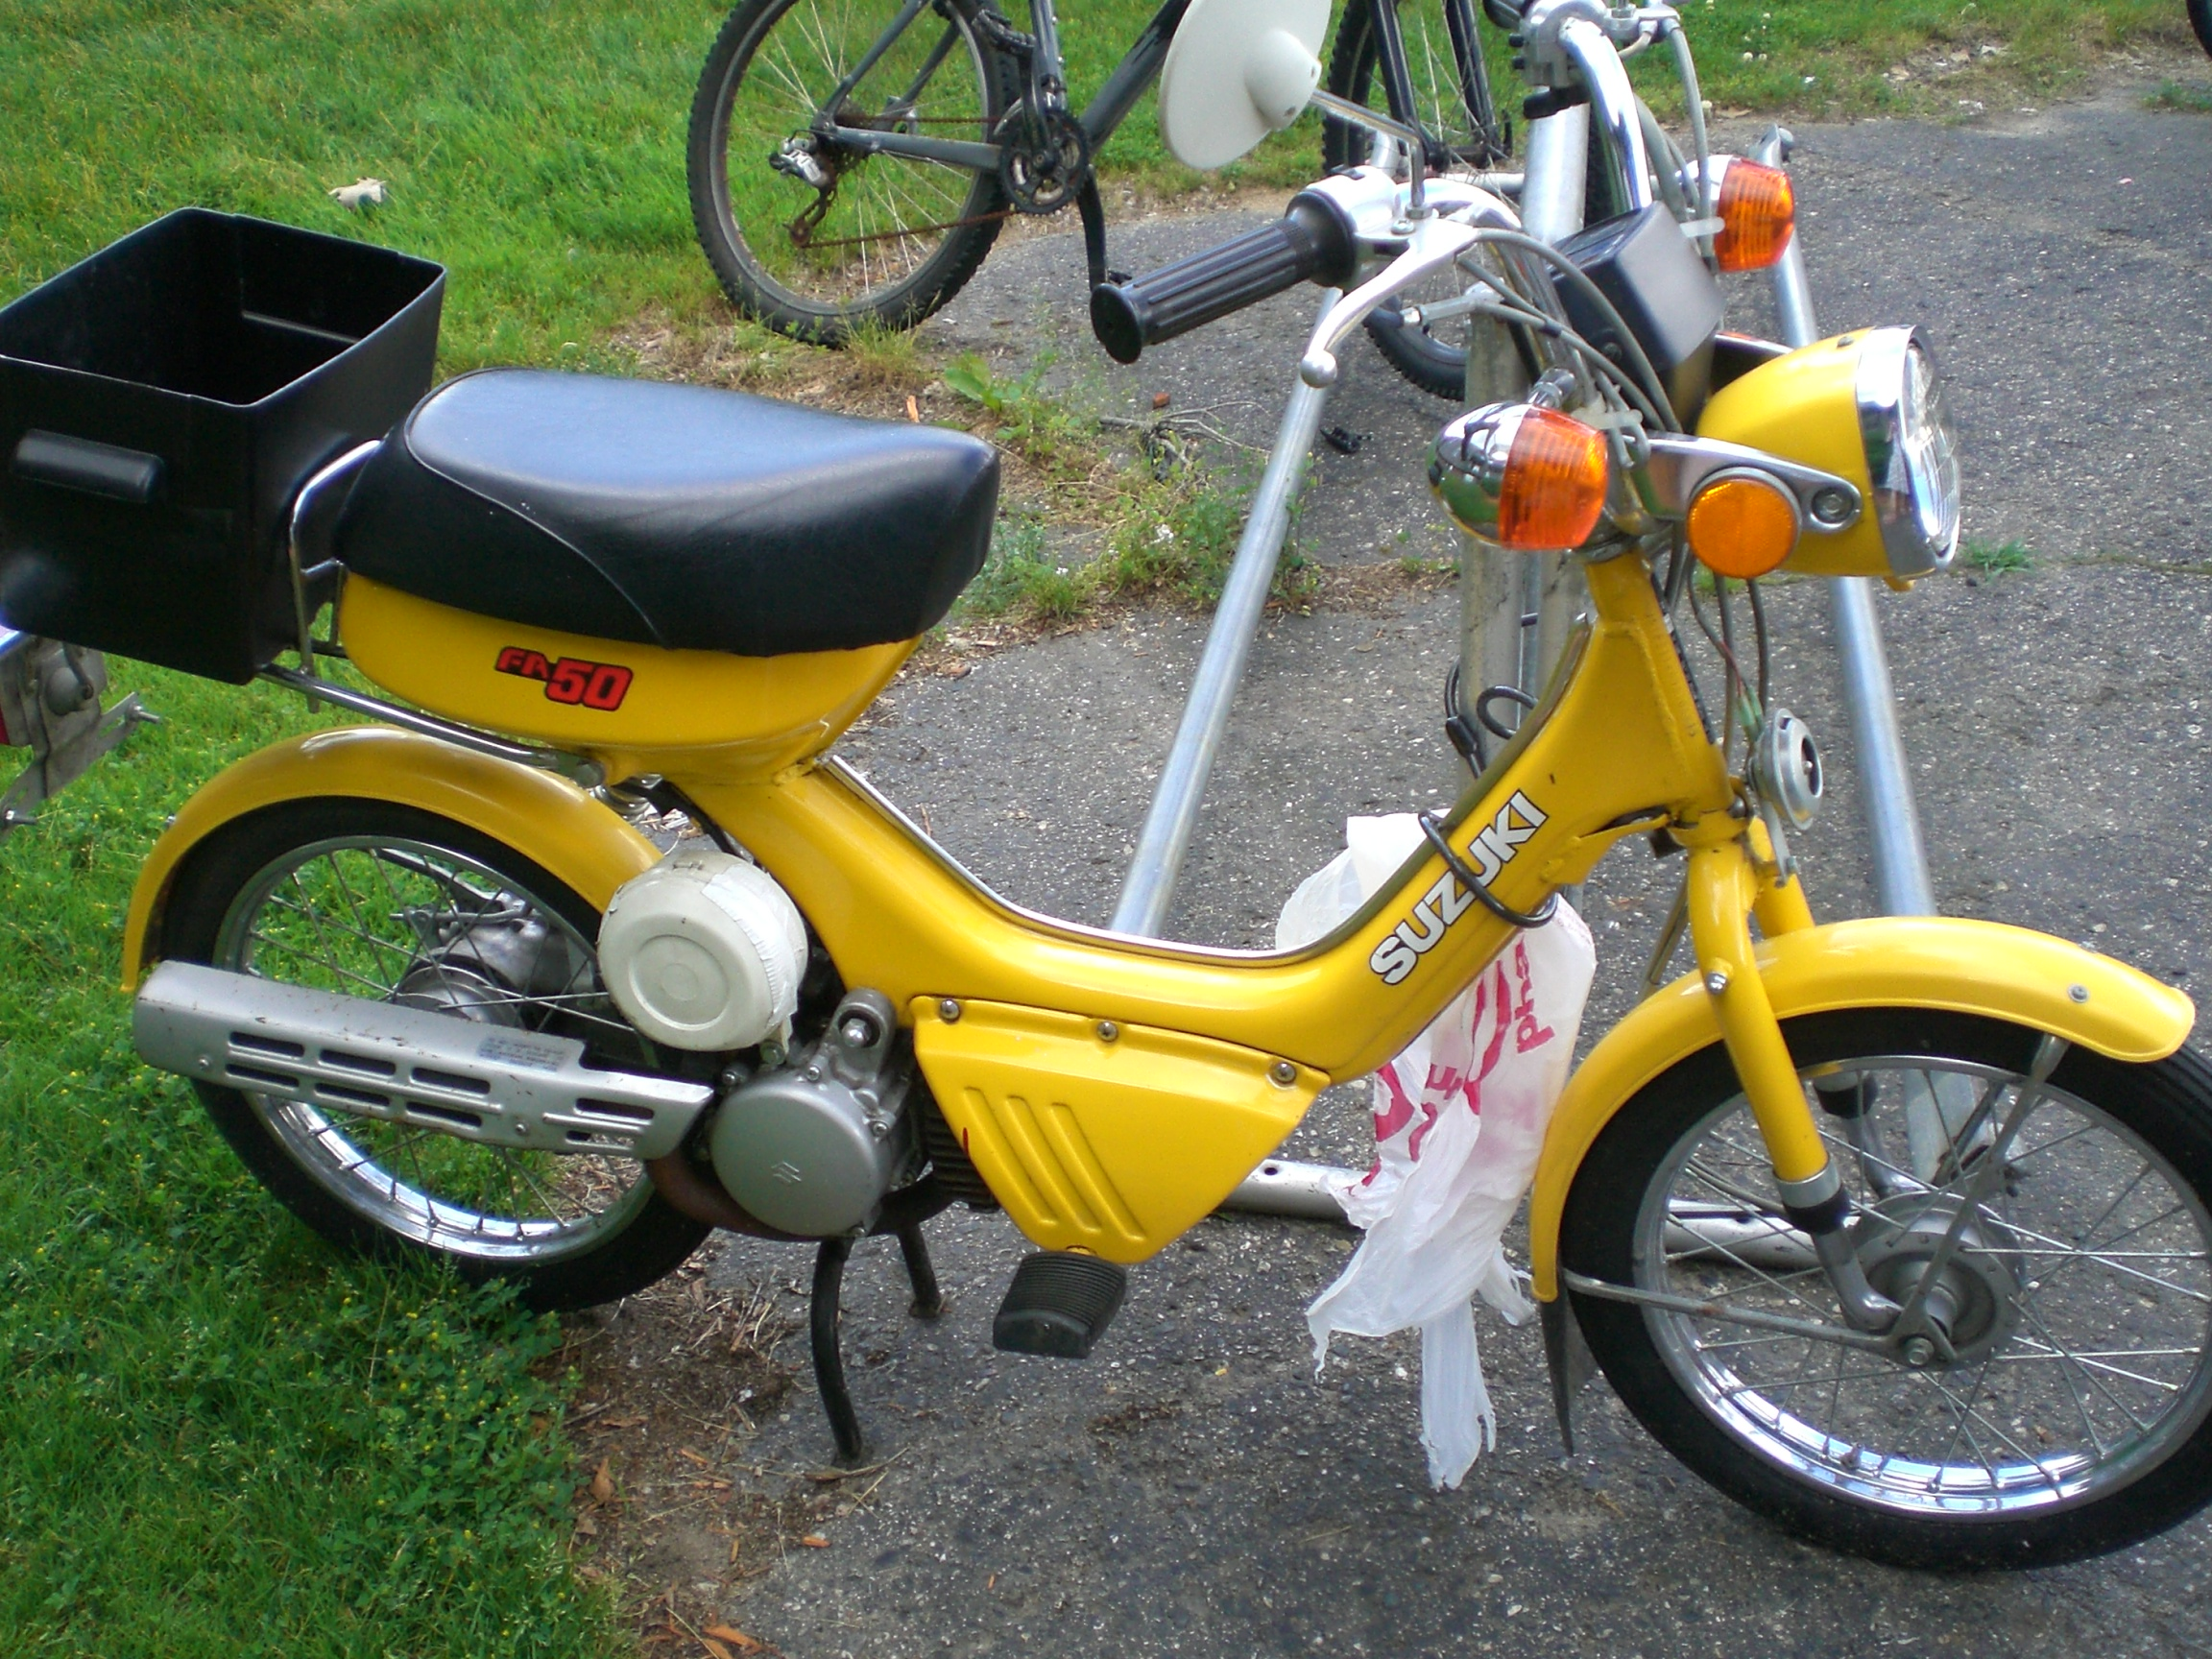 File:Suzuki FA50 1986.jpg - Wikimedia Commons